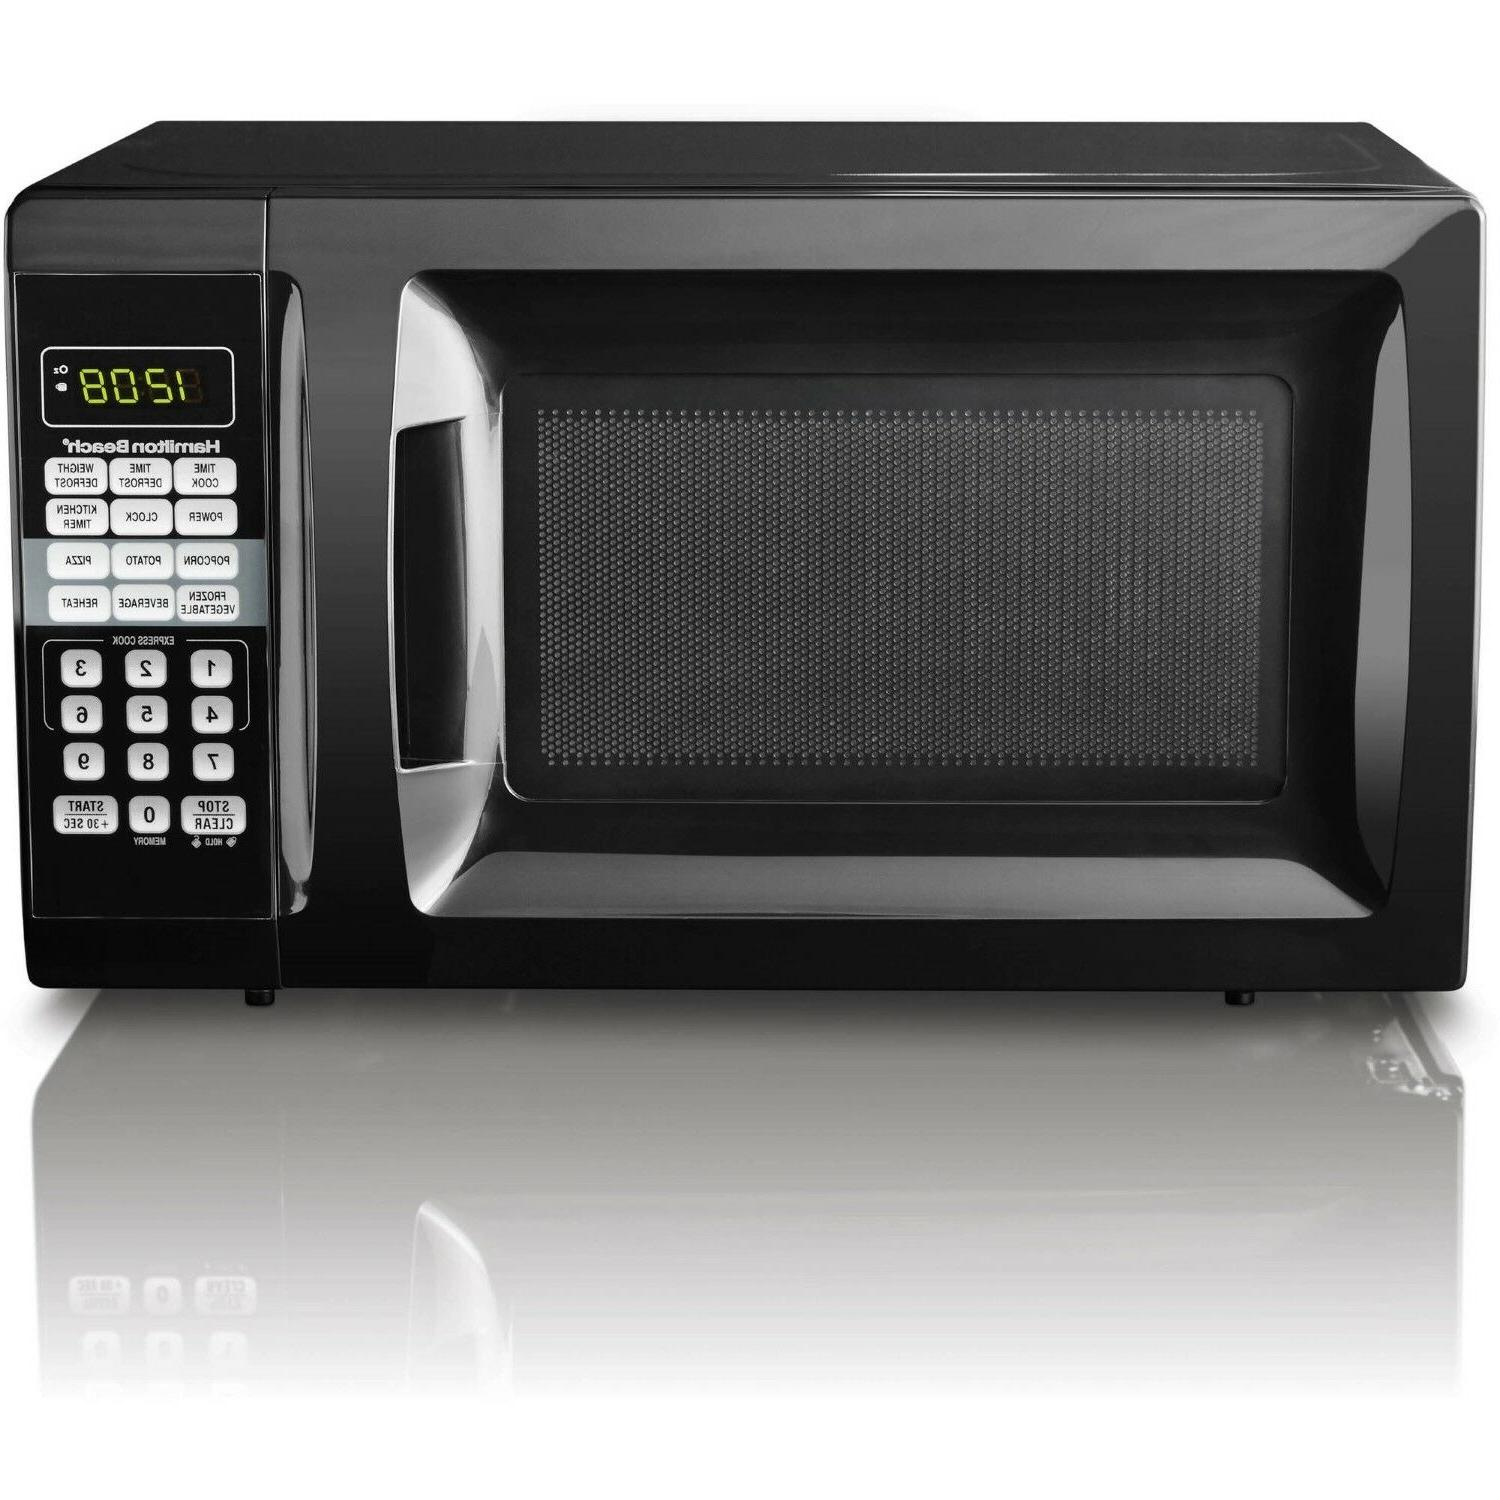 Hamilton Beach Digital Microwave Oven Kitchen 0.7 Cu Ft Quic